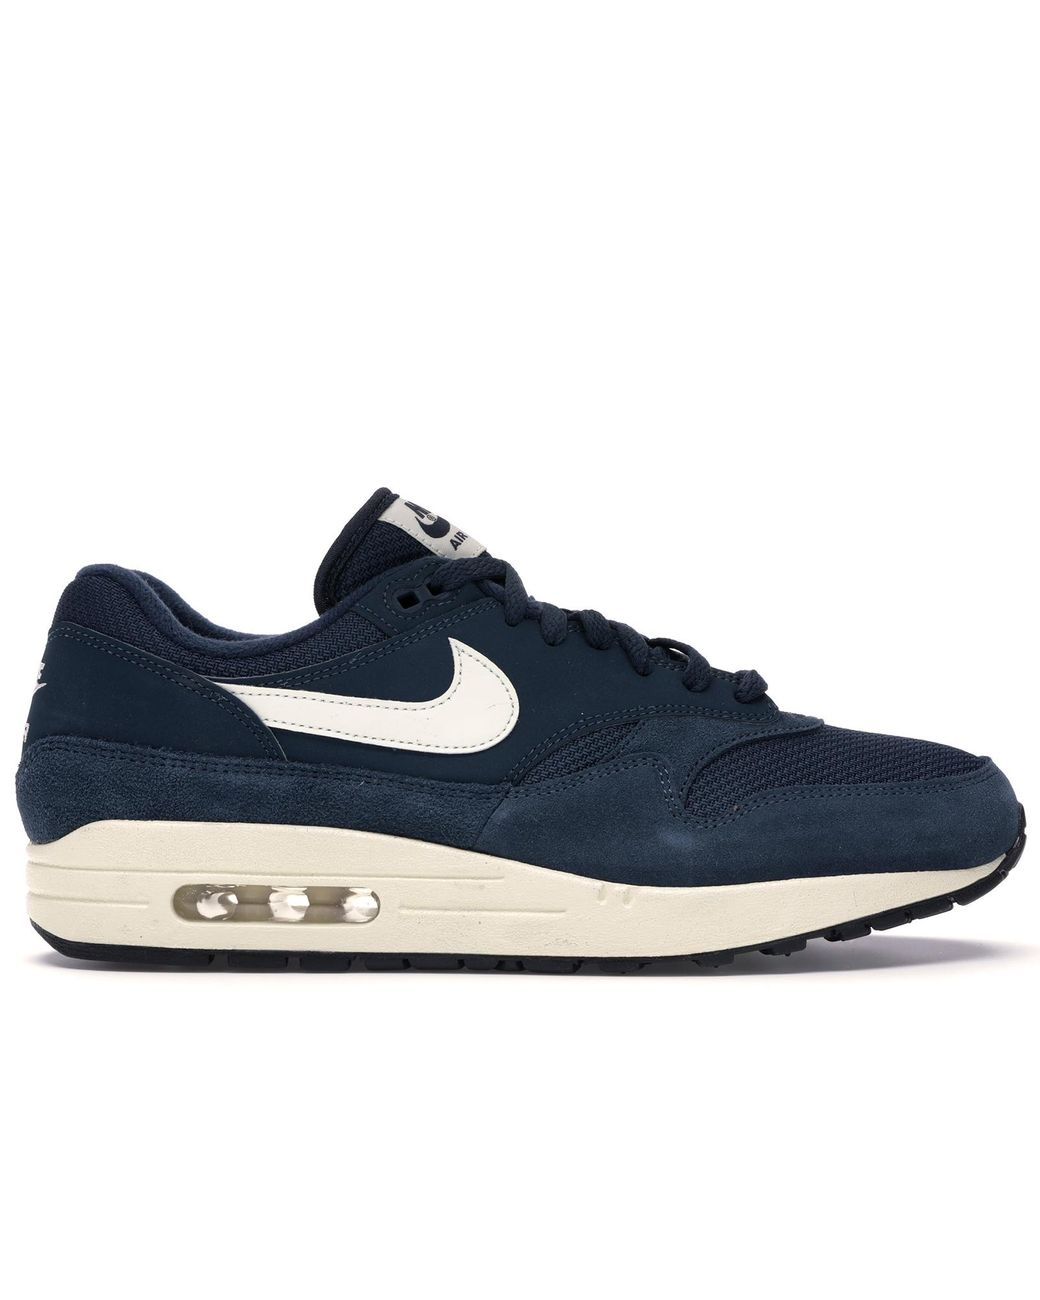 Nike Air Max 1 Armory Navy in Blue for